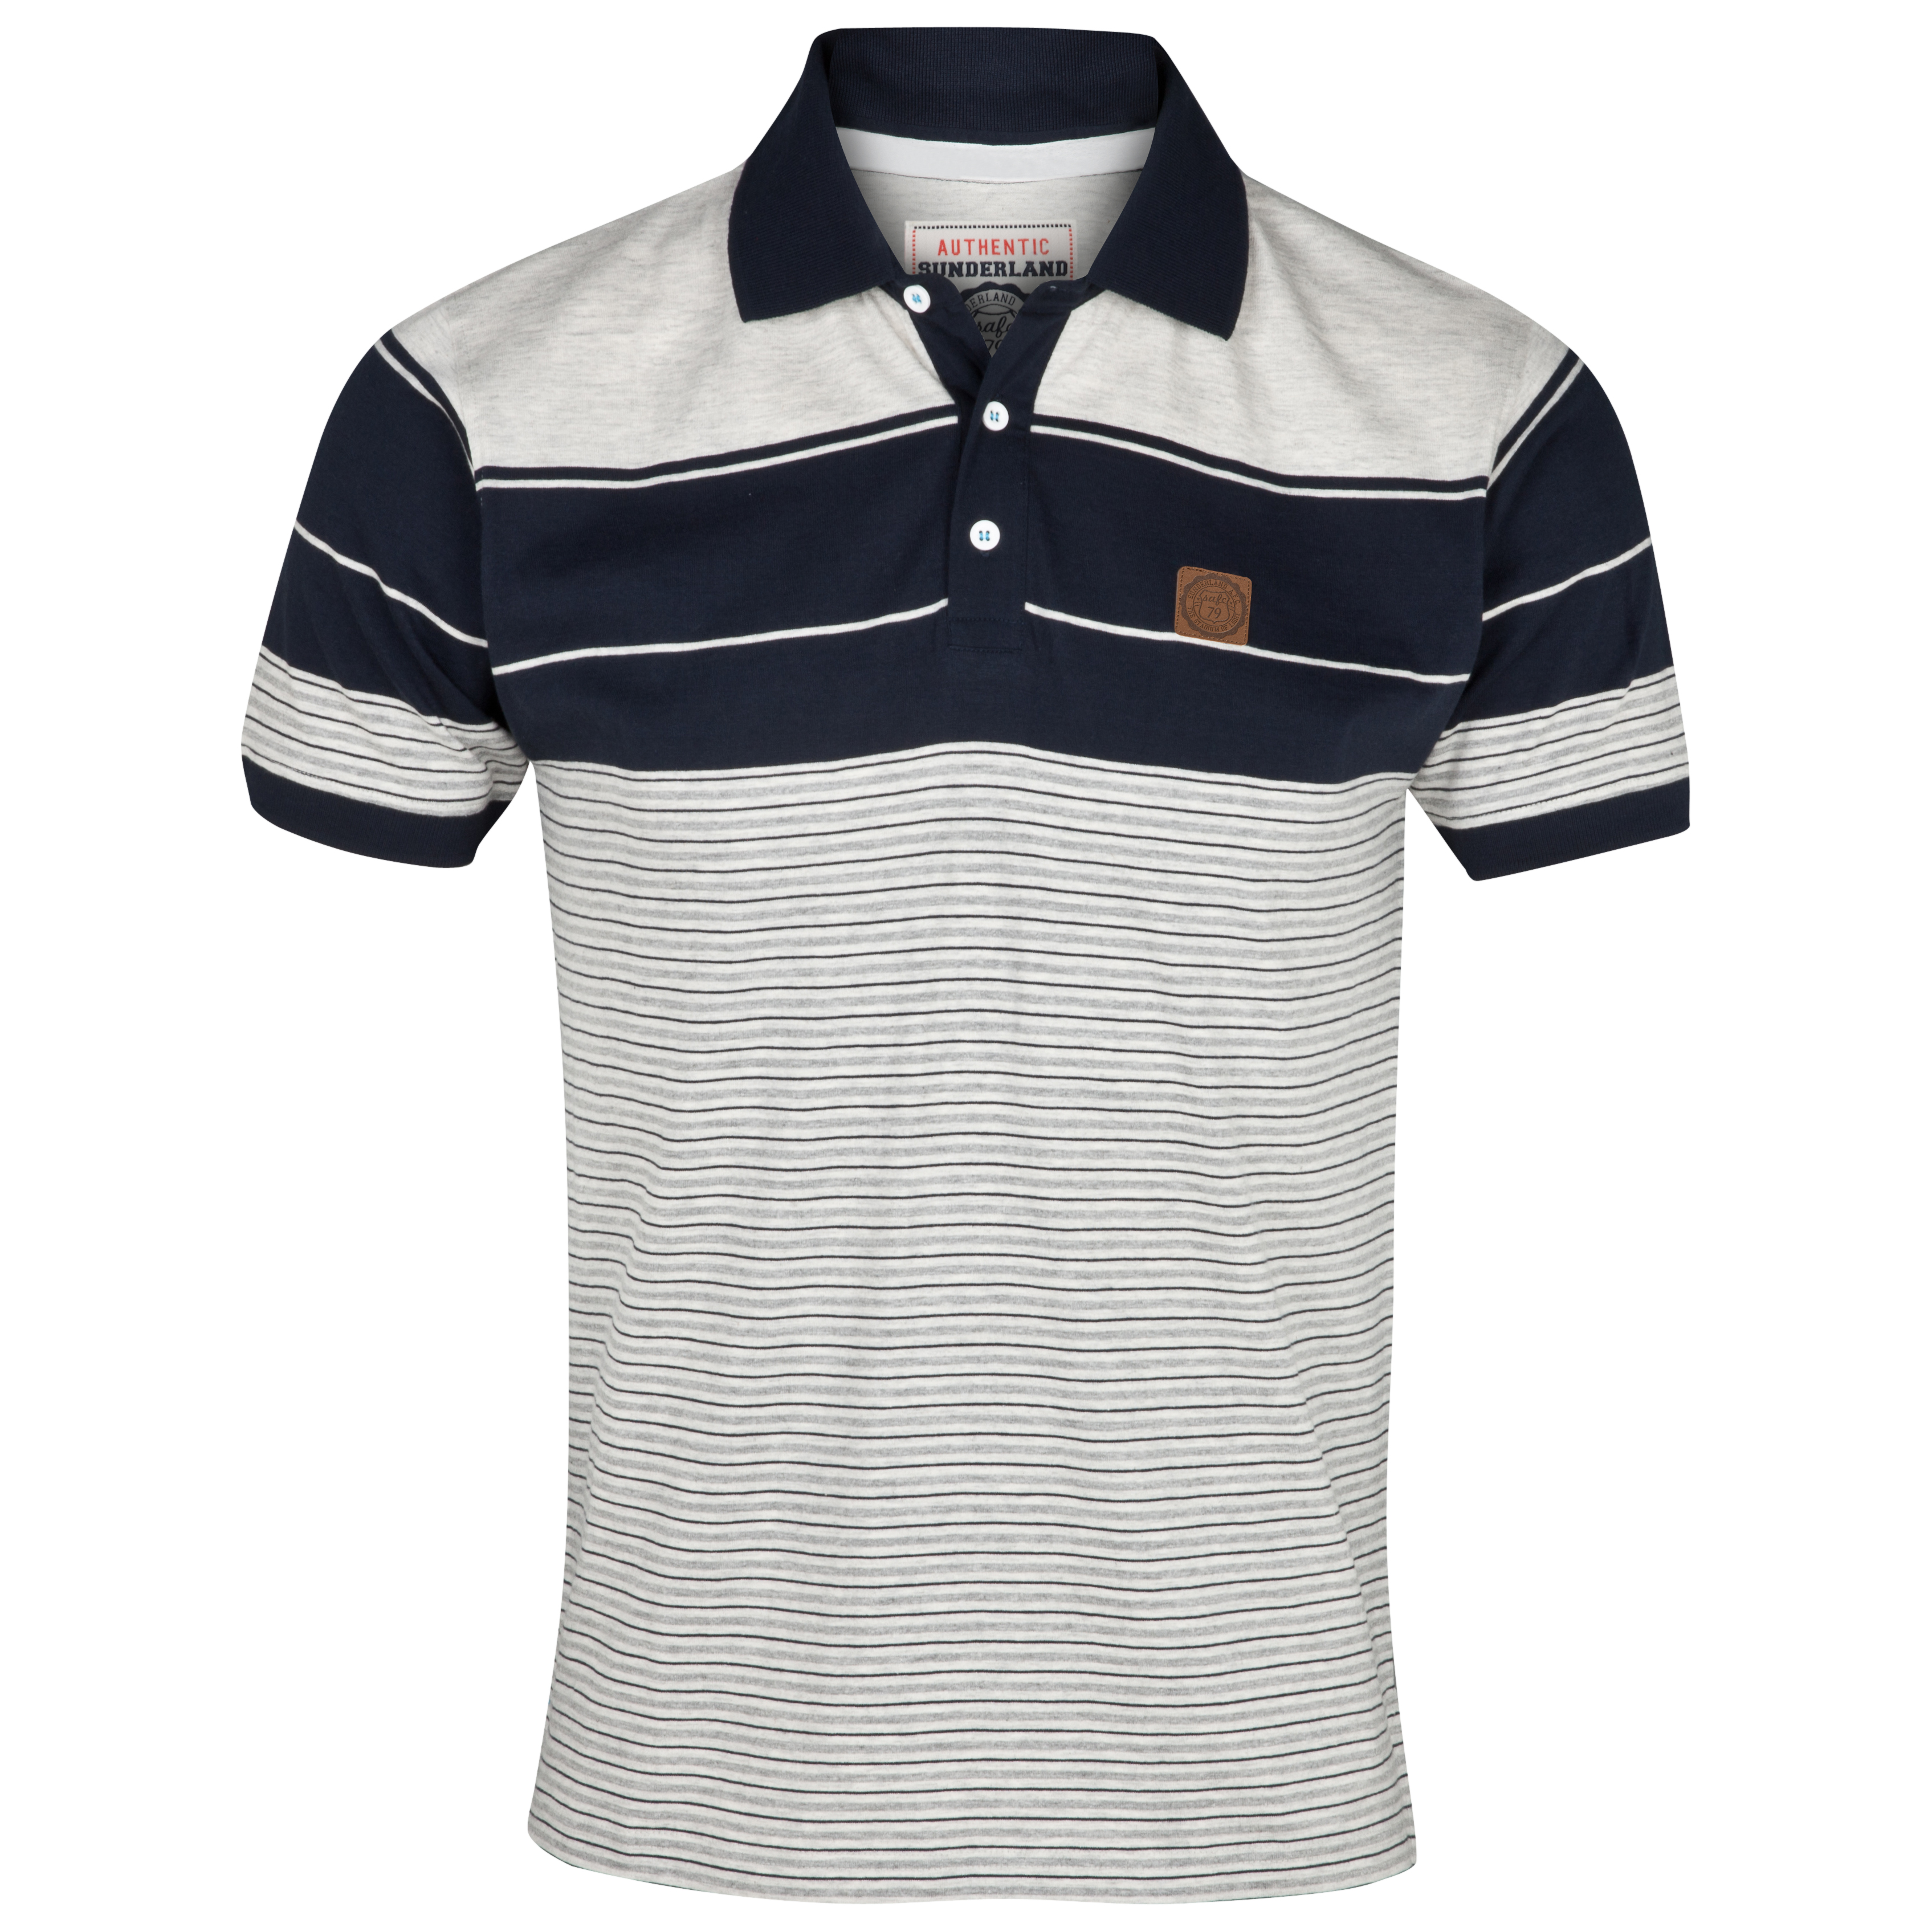 Sunderland Tide Polo Top - Navy/Ecru Marl